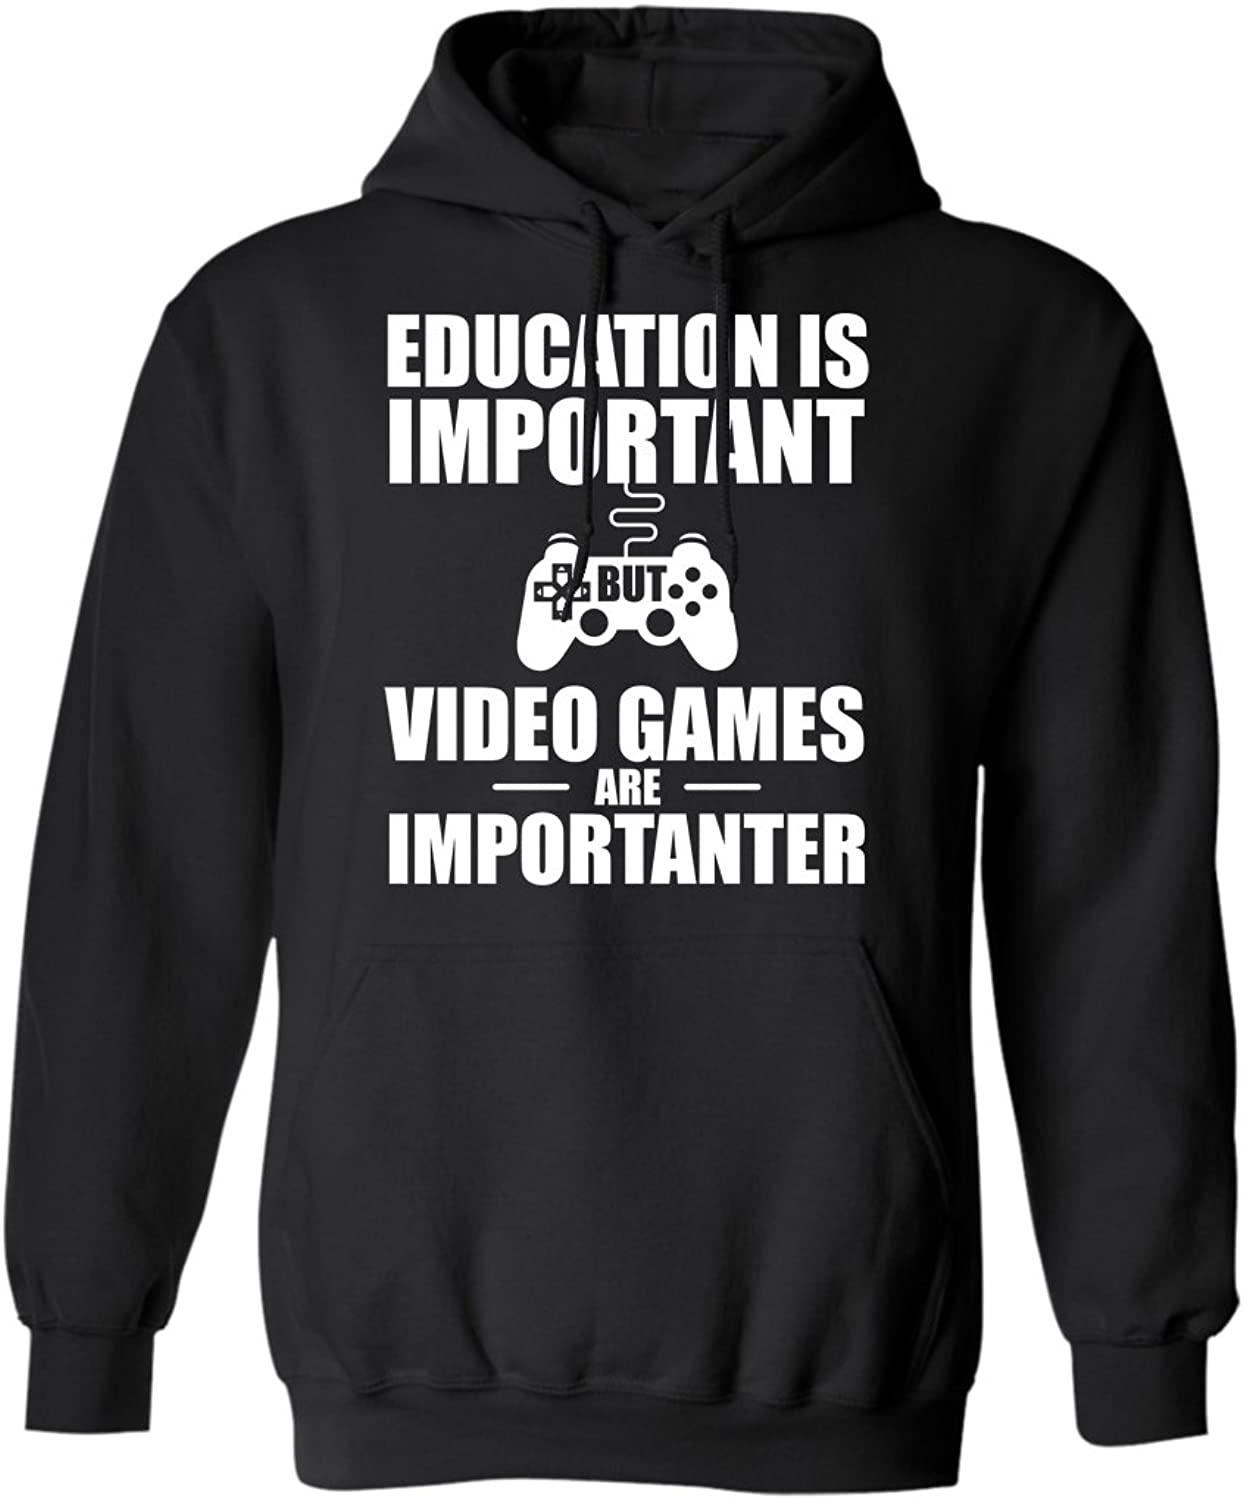 9bbe6a8b Teechopchop Funny Gamer Video Games Games Games are Importanter Th Hoodie  ea6411